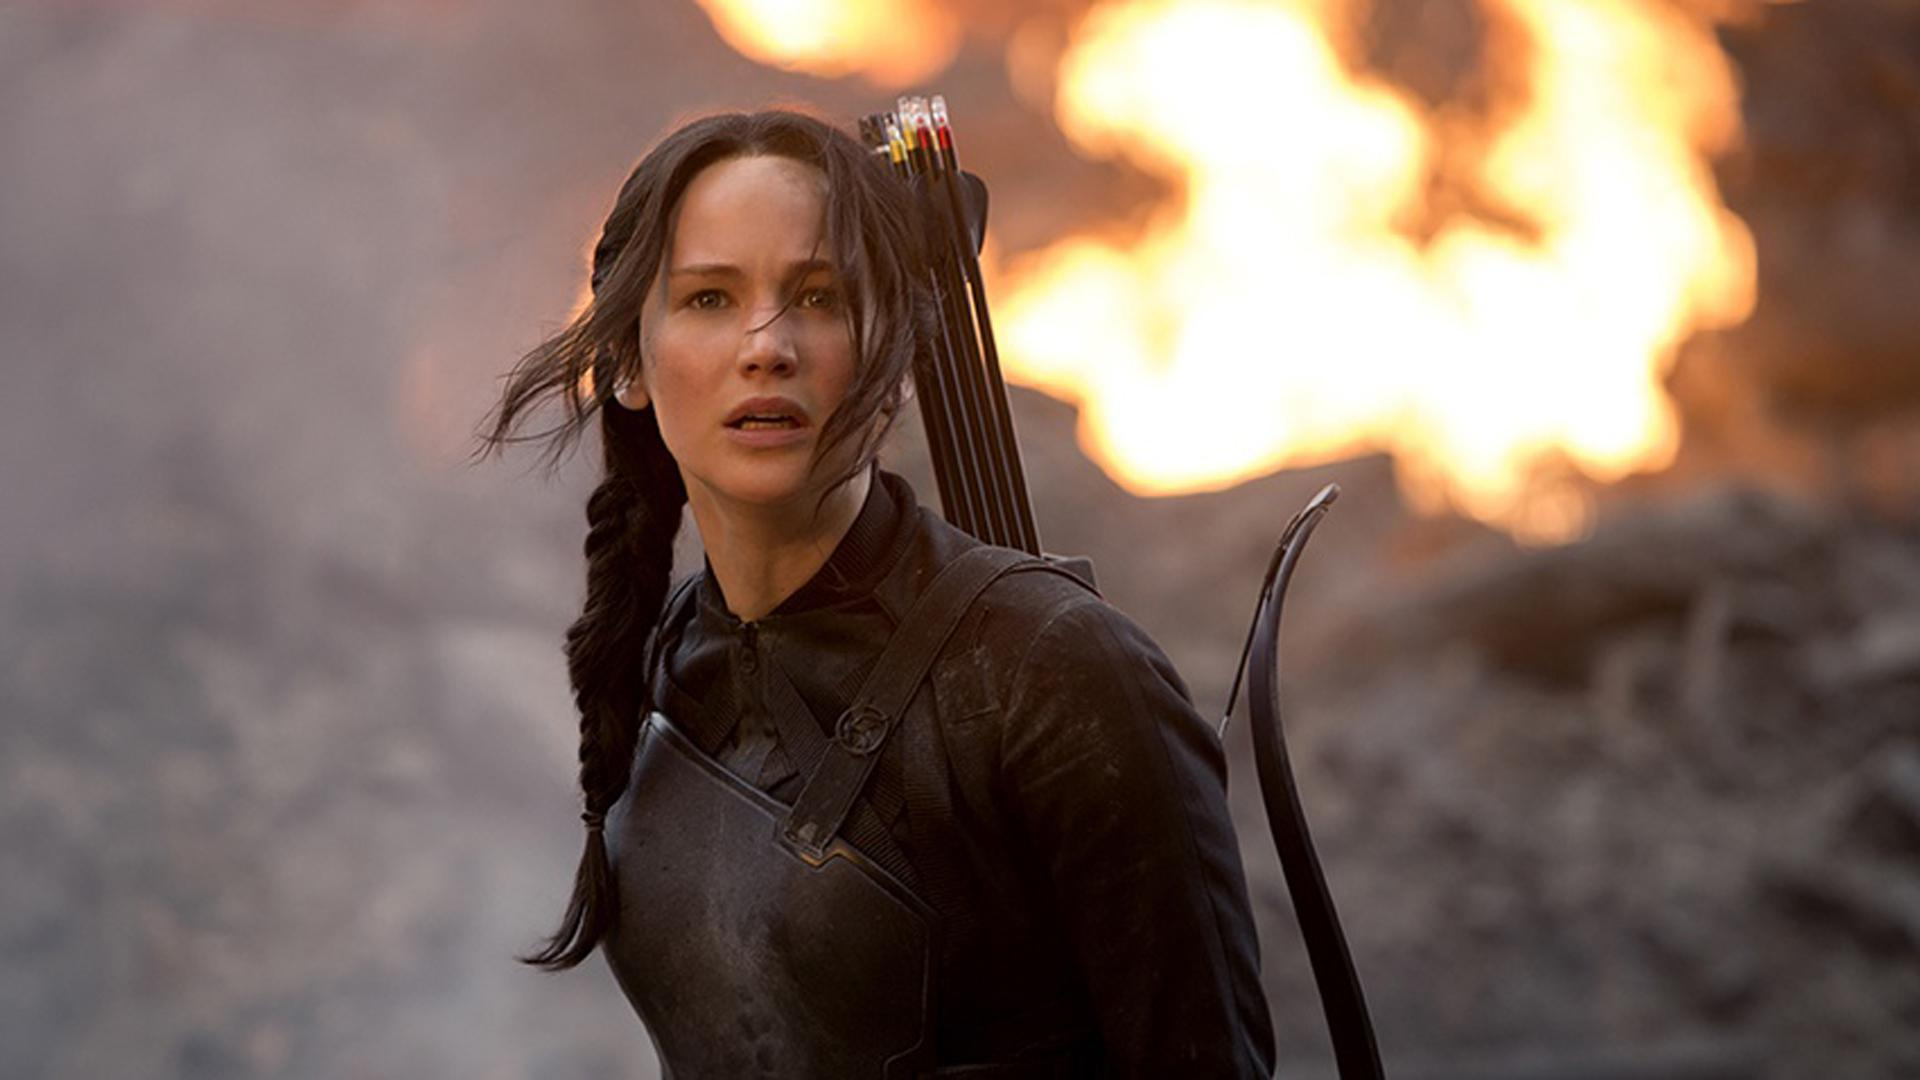 7 Moments In The Hunger Games That Mirror Real Life Sheknows